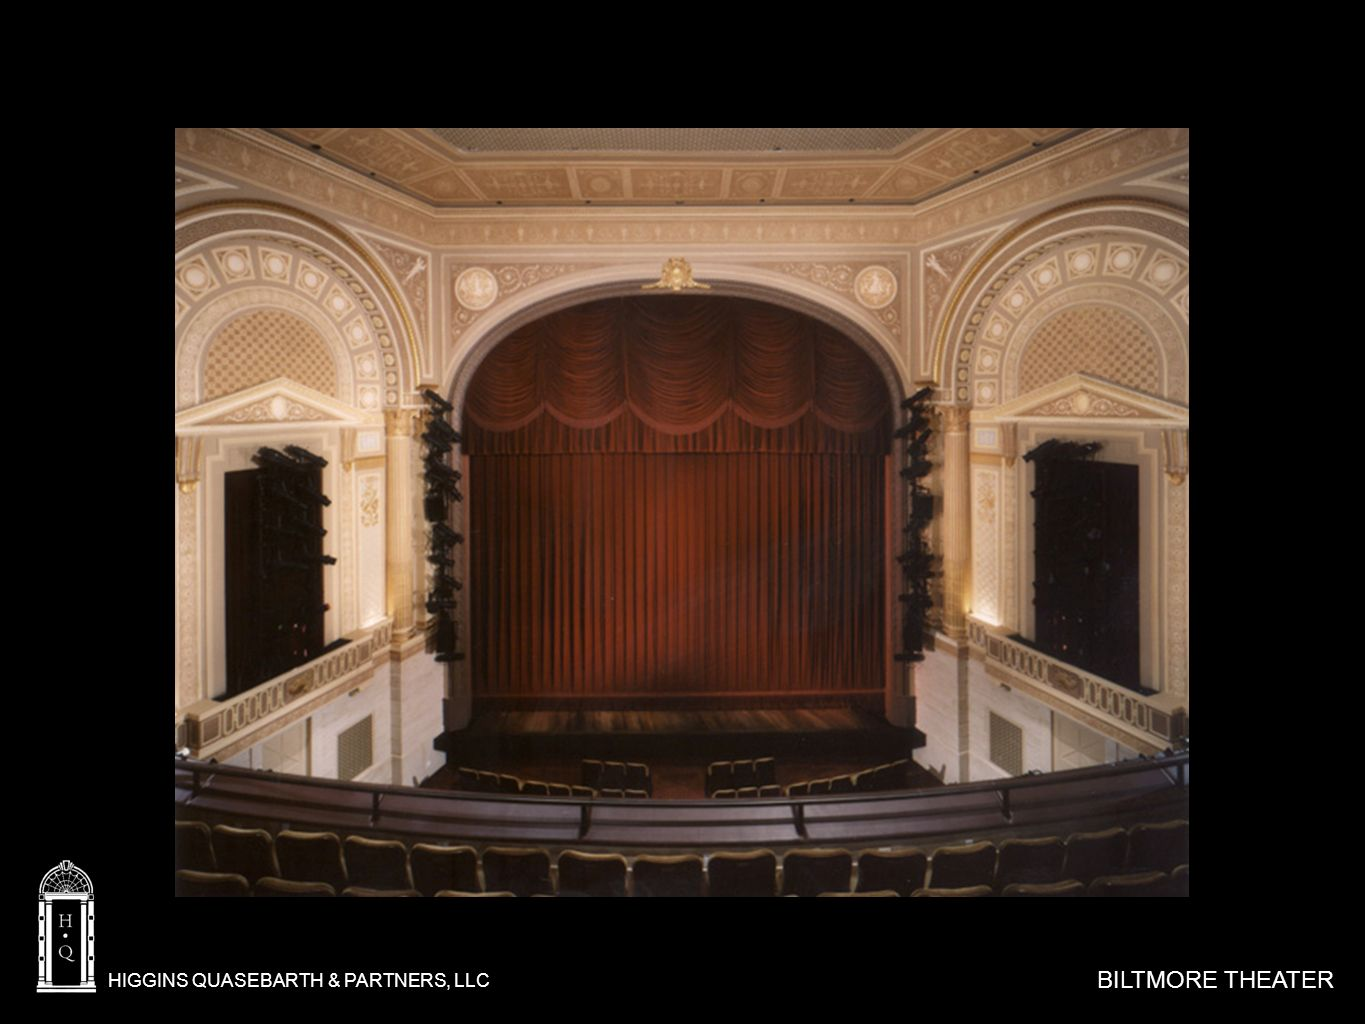 HIGGINS QUASEBARTH & PARTNERS, LLC BILTMORE THEATER